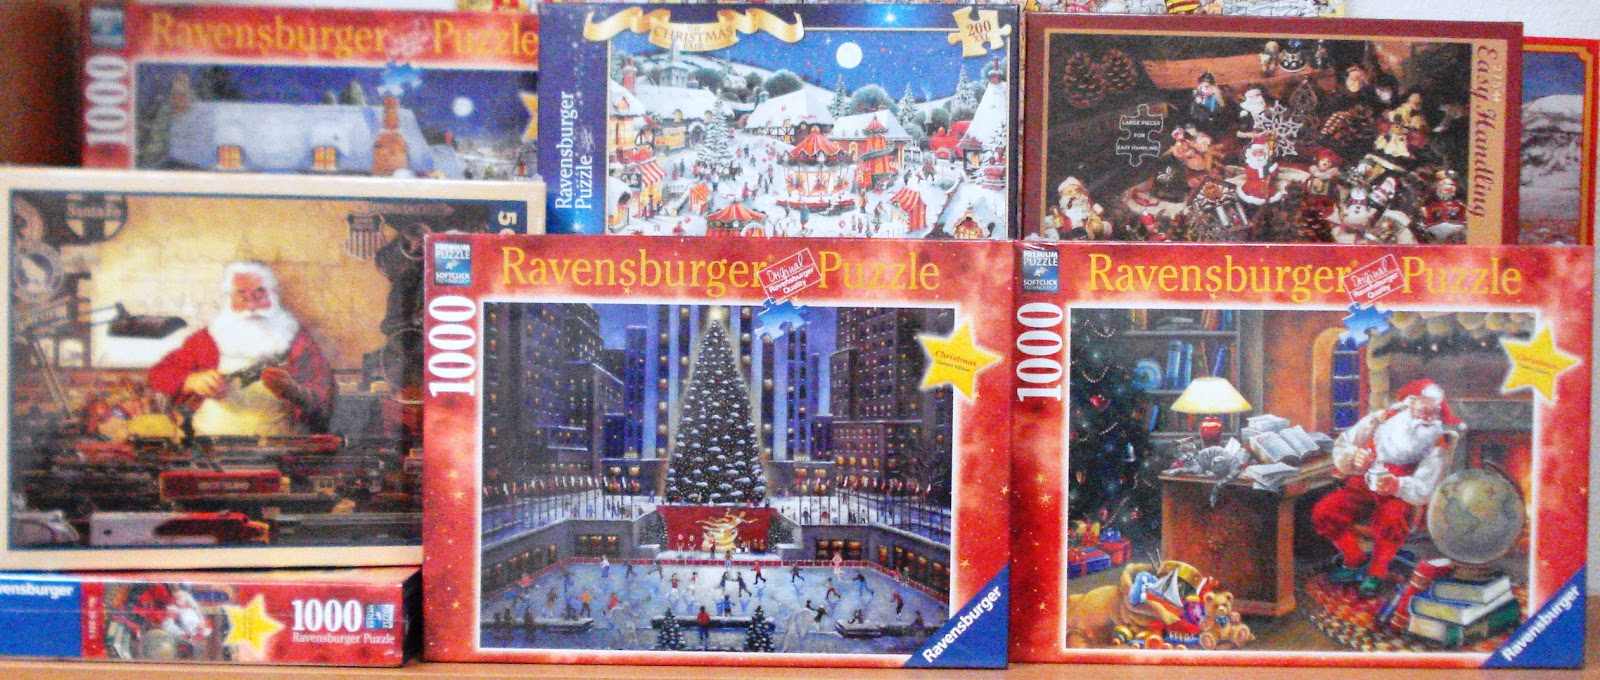 new arrivals christmas puzzles - Ravensburger Christmas Puzzles